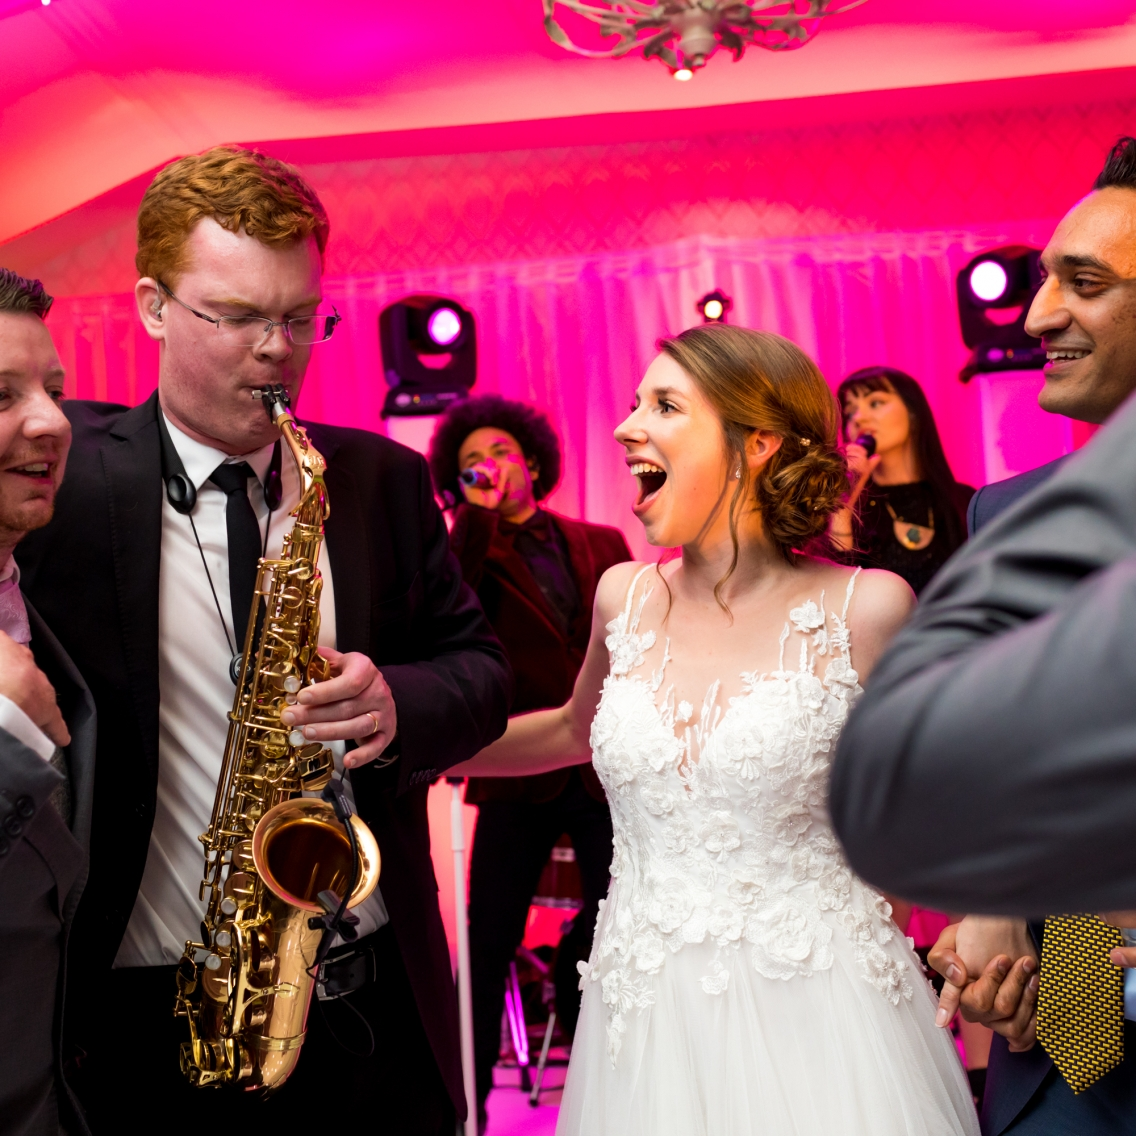 Pennyhill Park Wedding Band